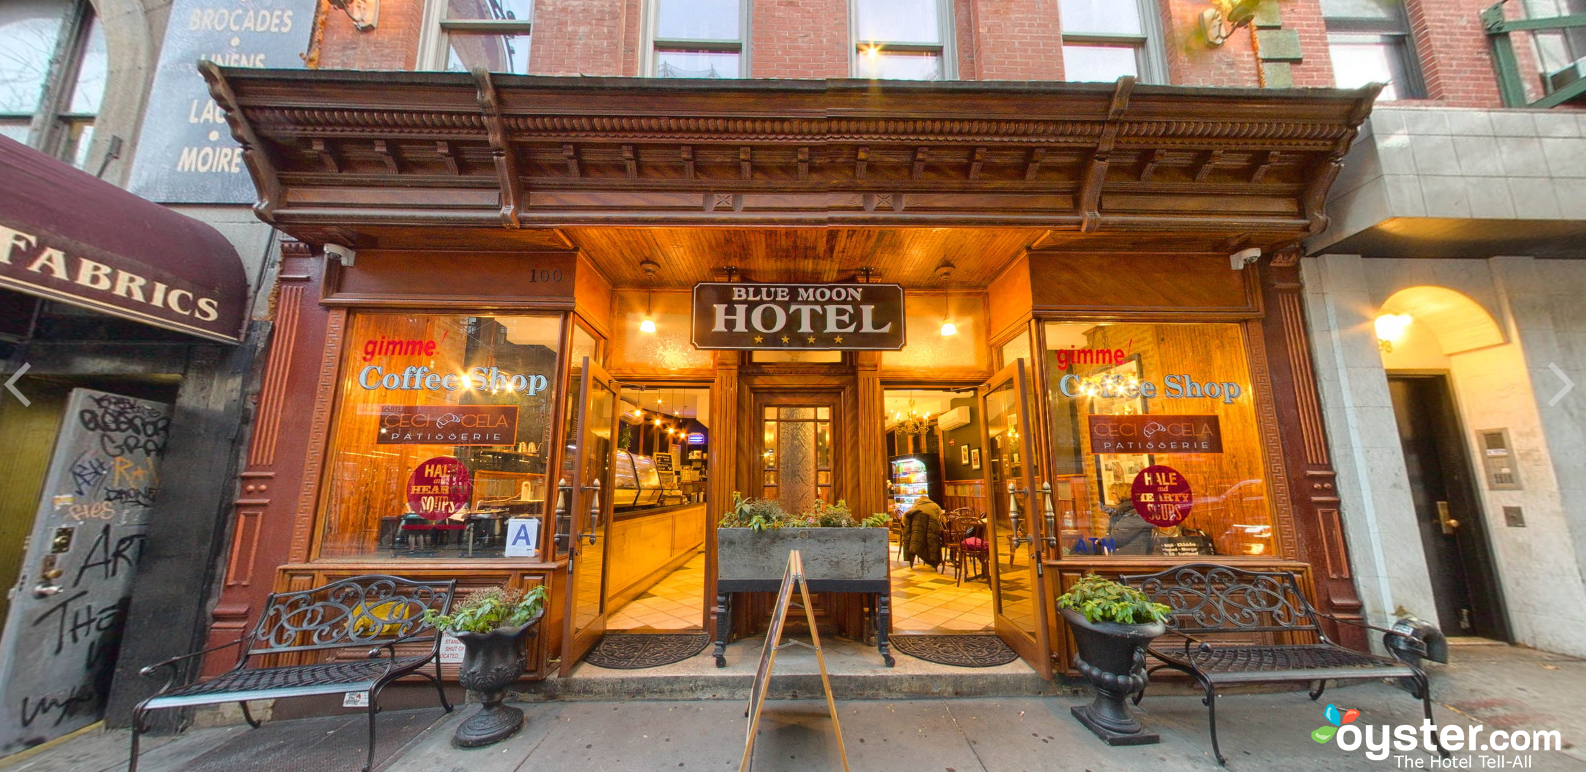 Blue moon boutique hotel ny day rooms hotelsbyday for The boutique hotel